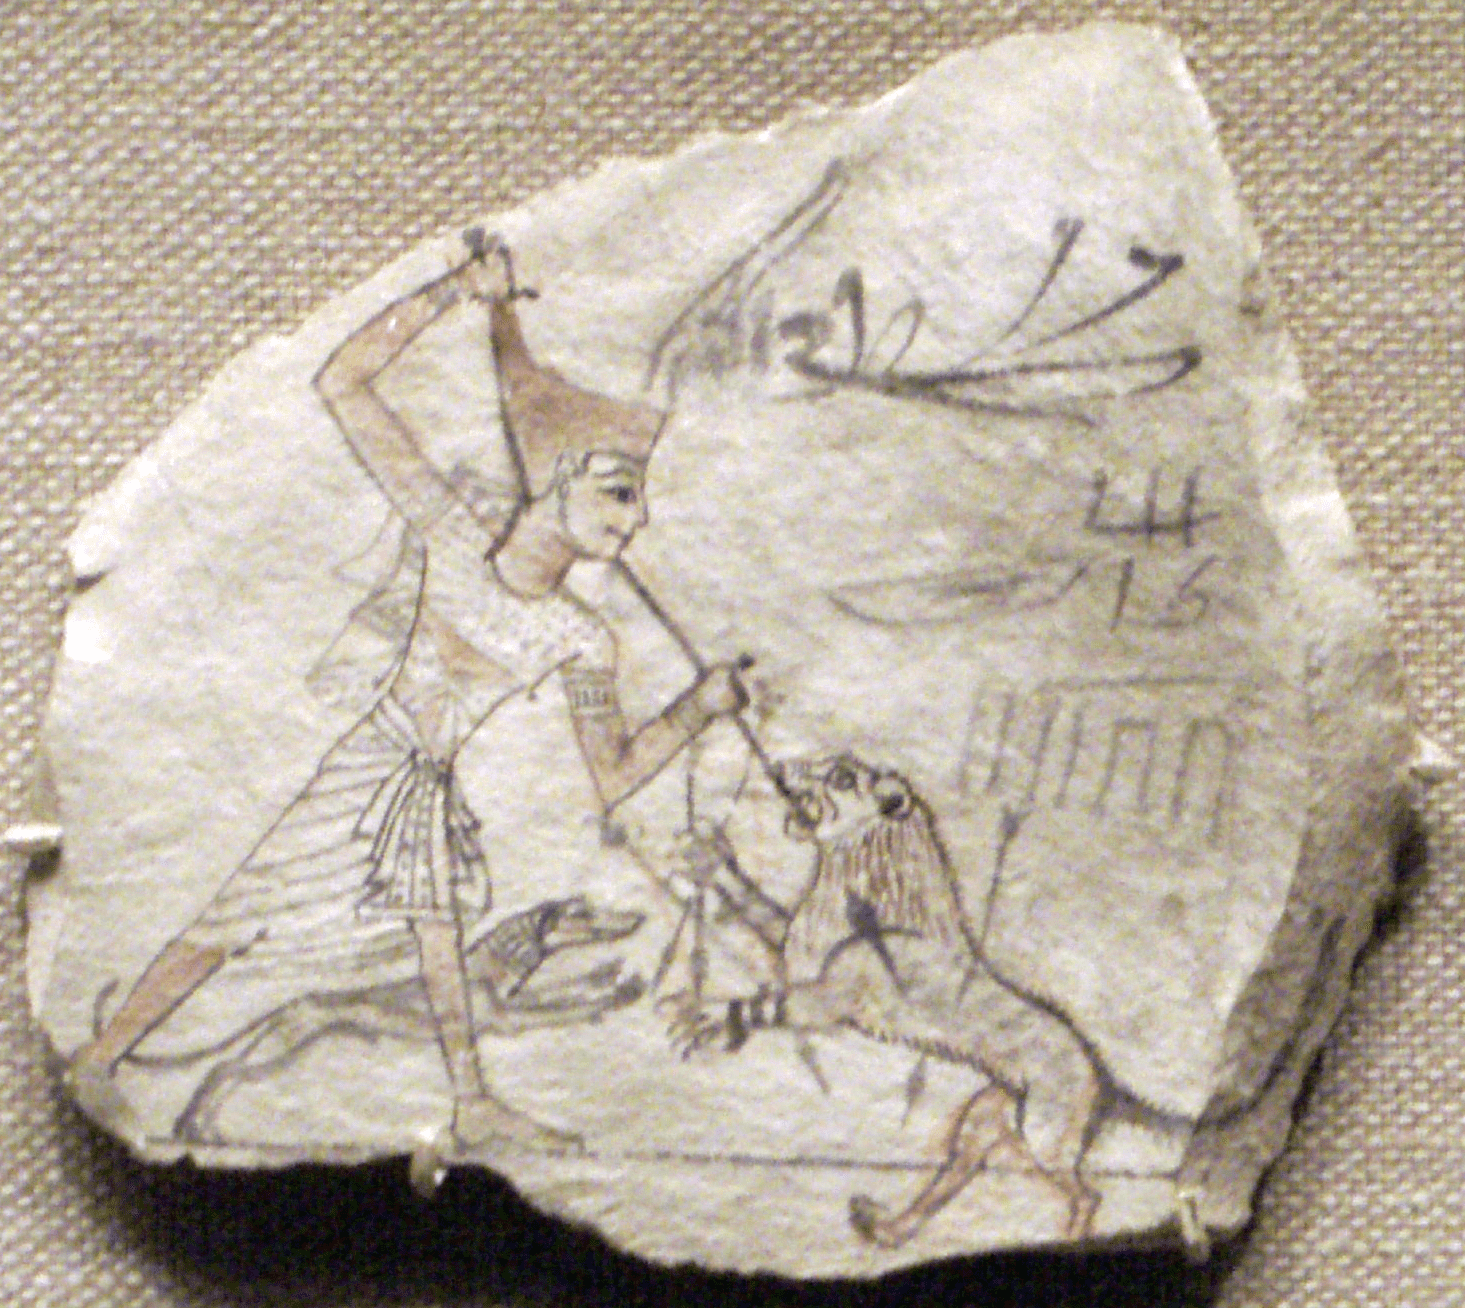 Ostracon from the Ramesside period, dynasties 19-20. From Thebes.